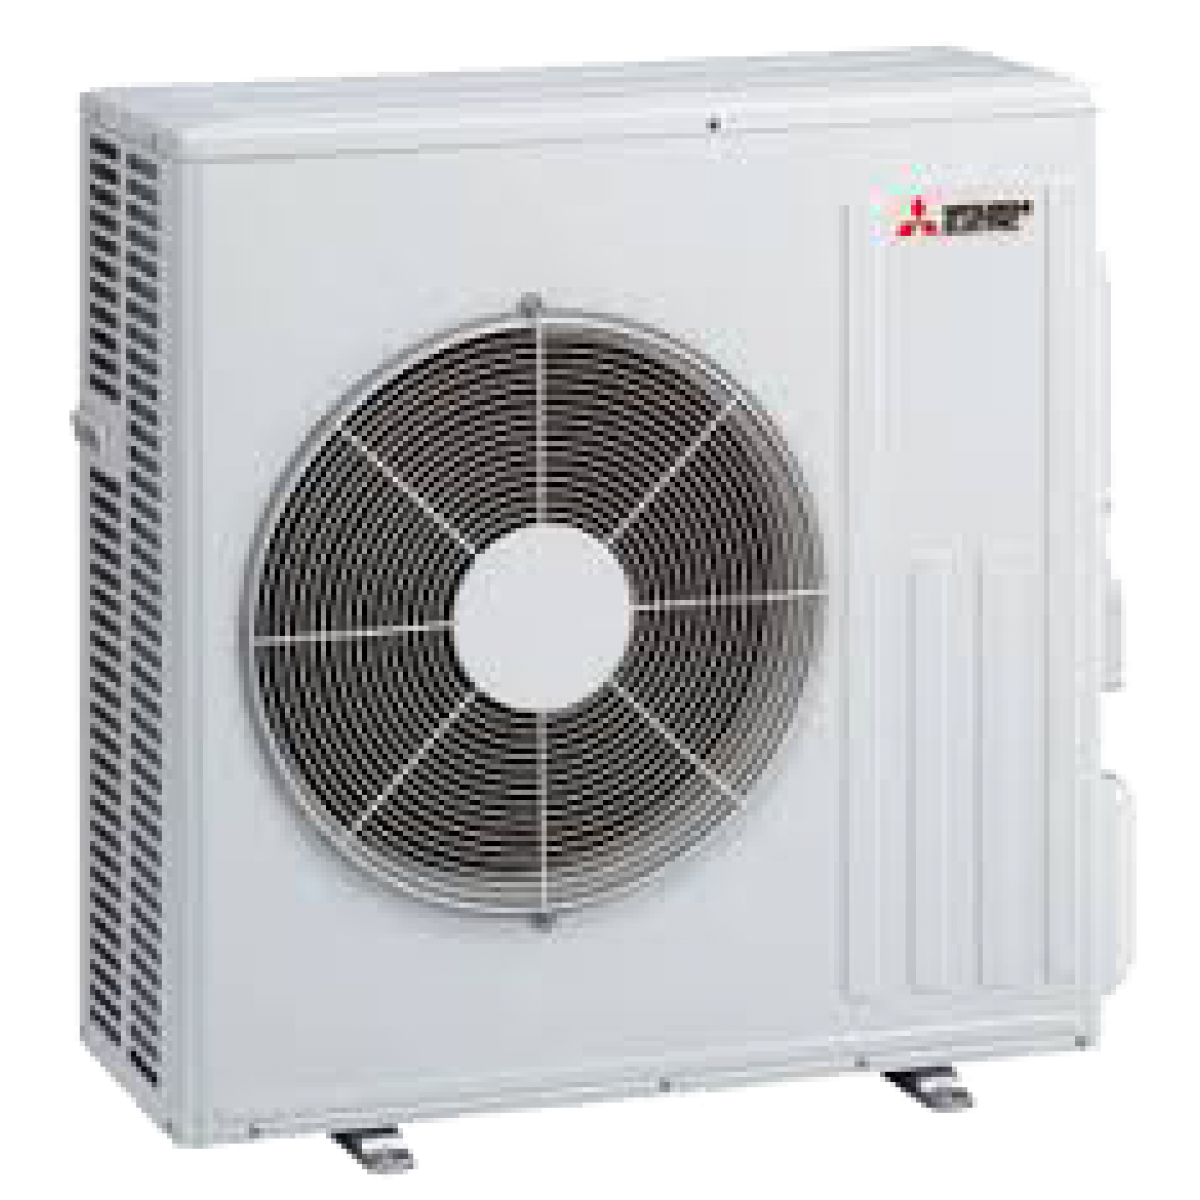 18k Btu 20 5 Seer Mitsubishi Muygl Air Conditioner Outdoor